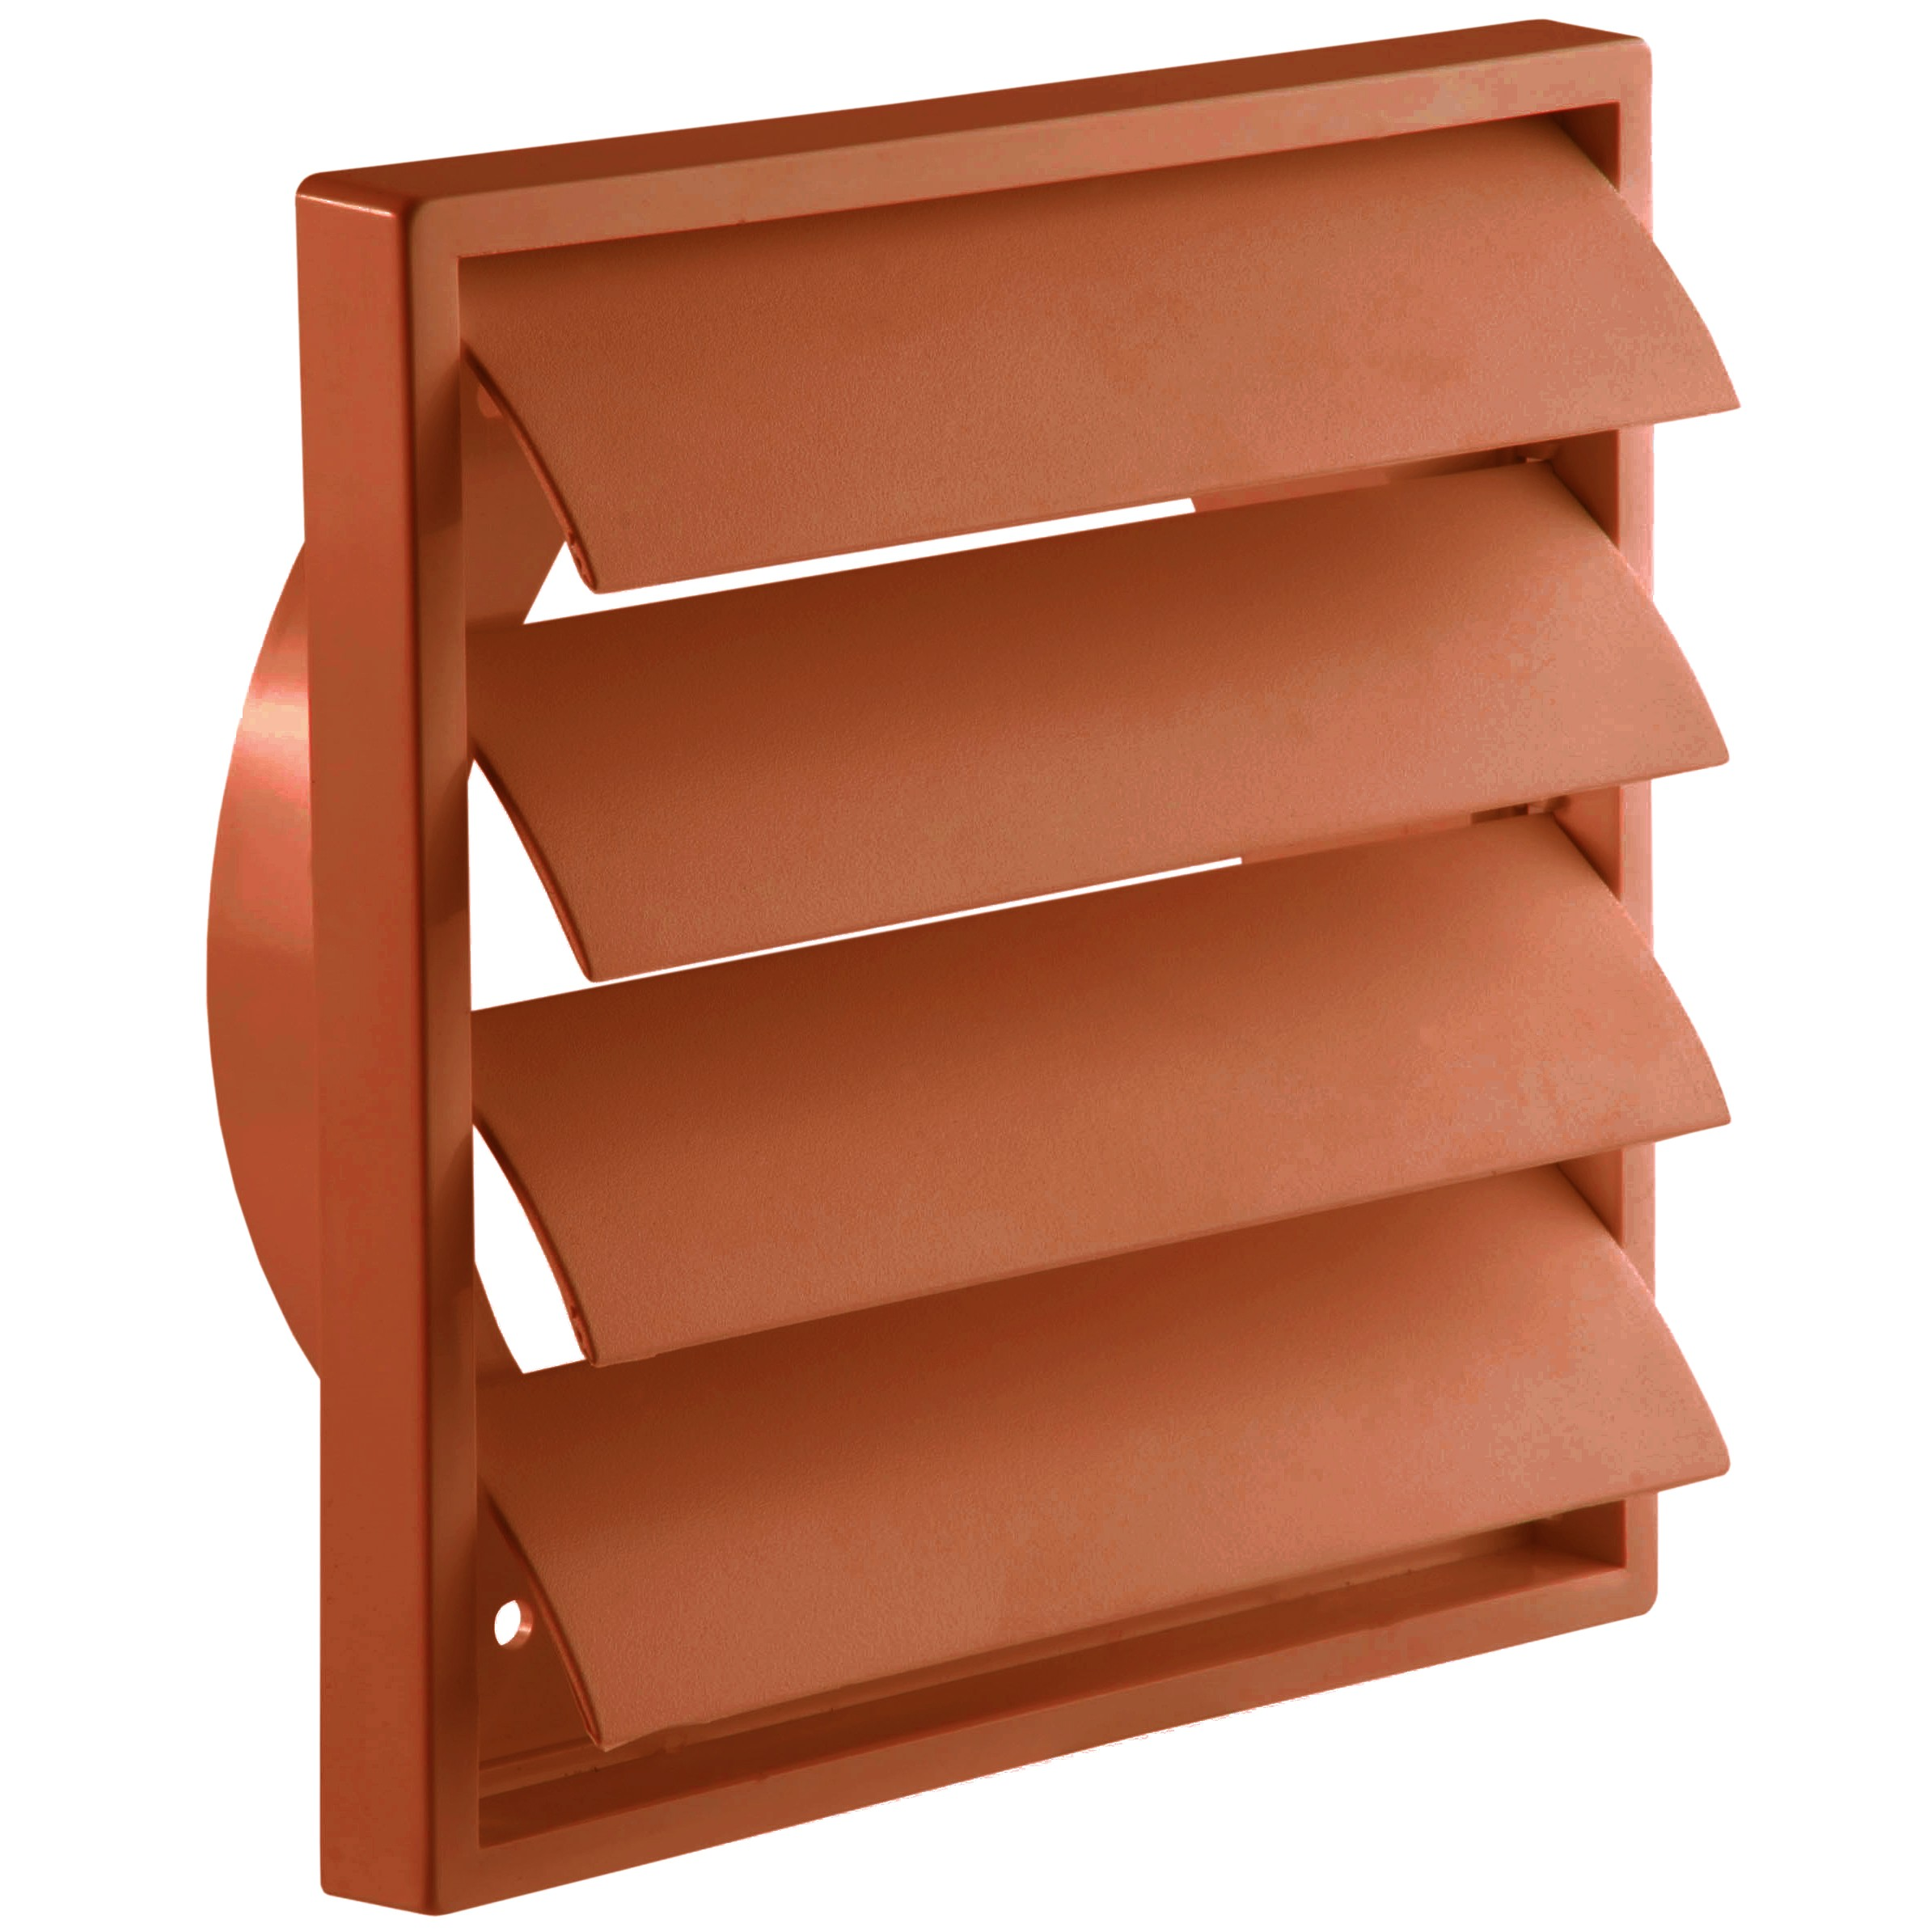 Manrose Round Ducting Pipe Gravity Shutter Vent Outlet - Terracotta, 150mm